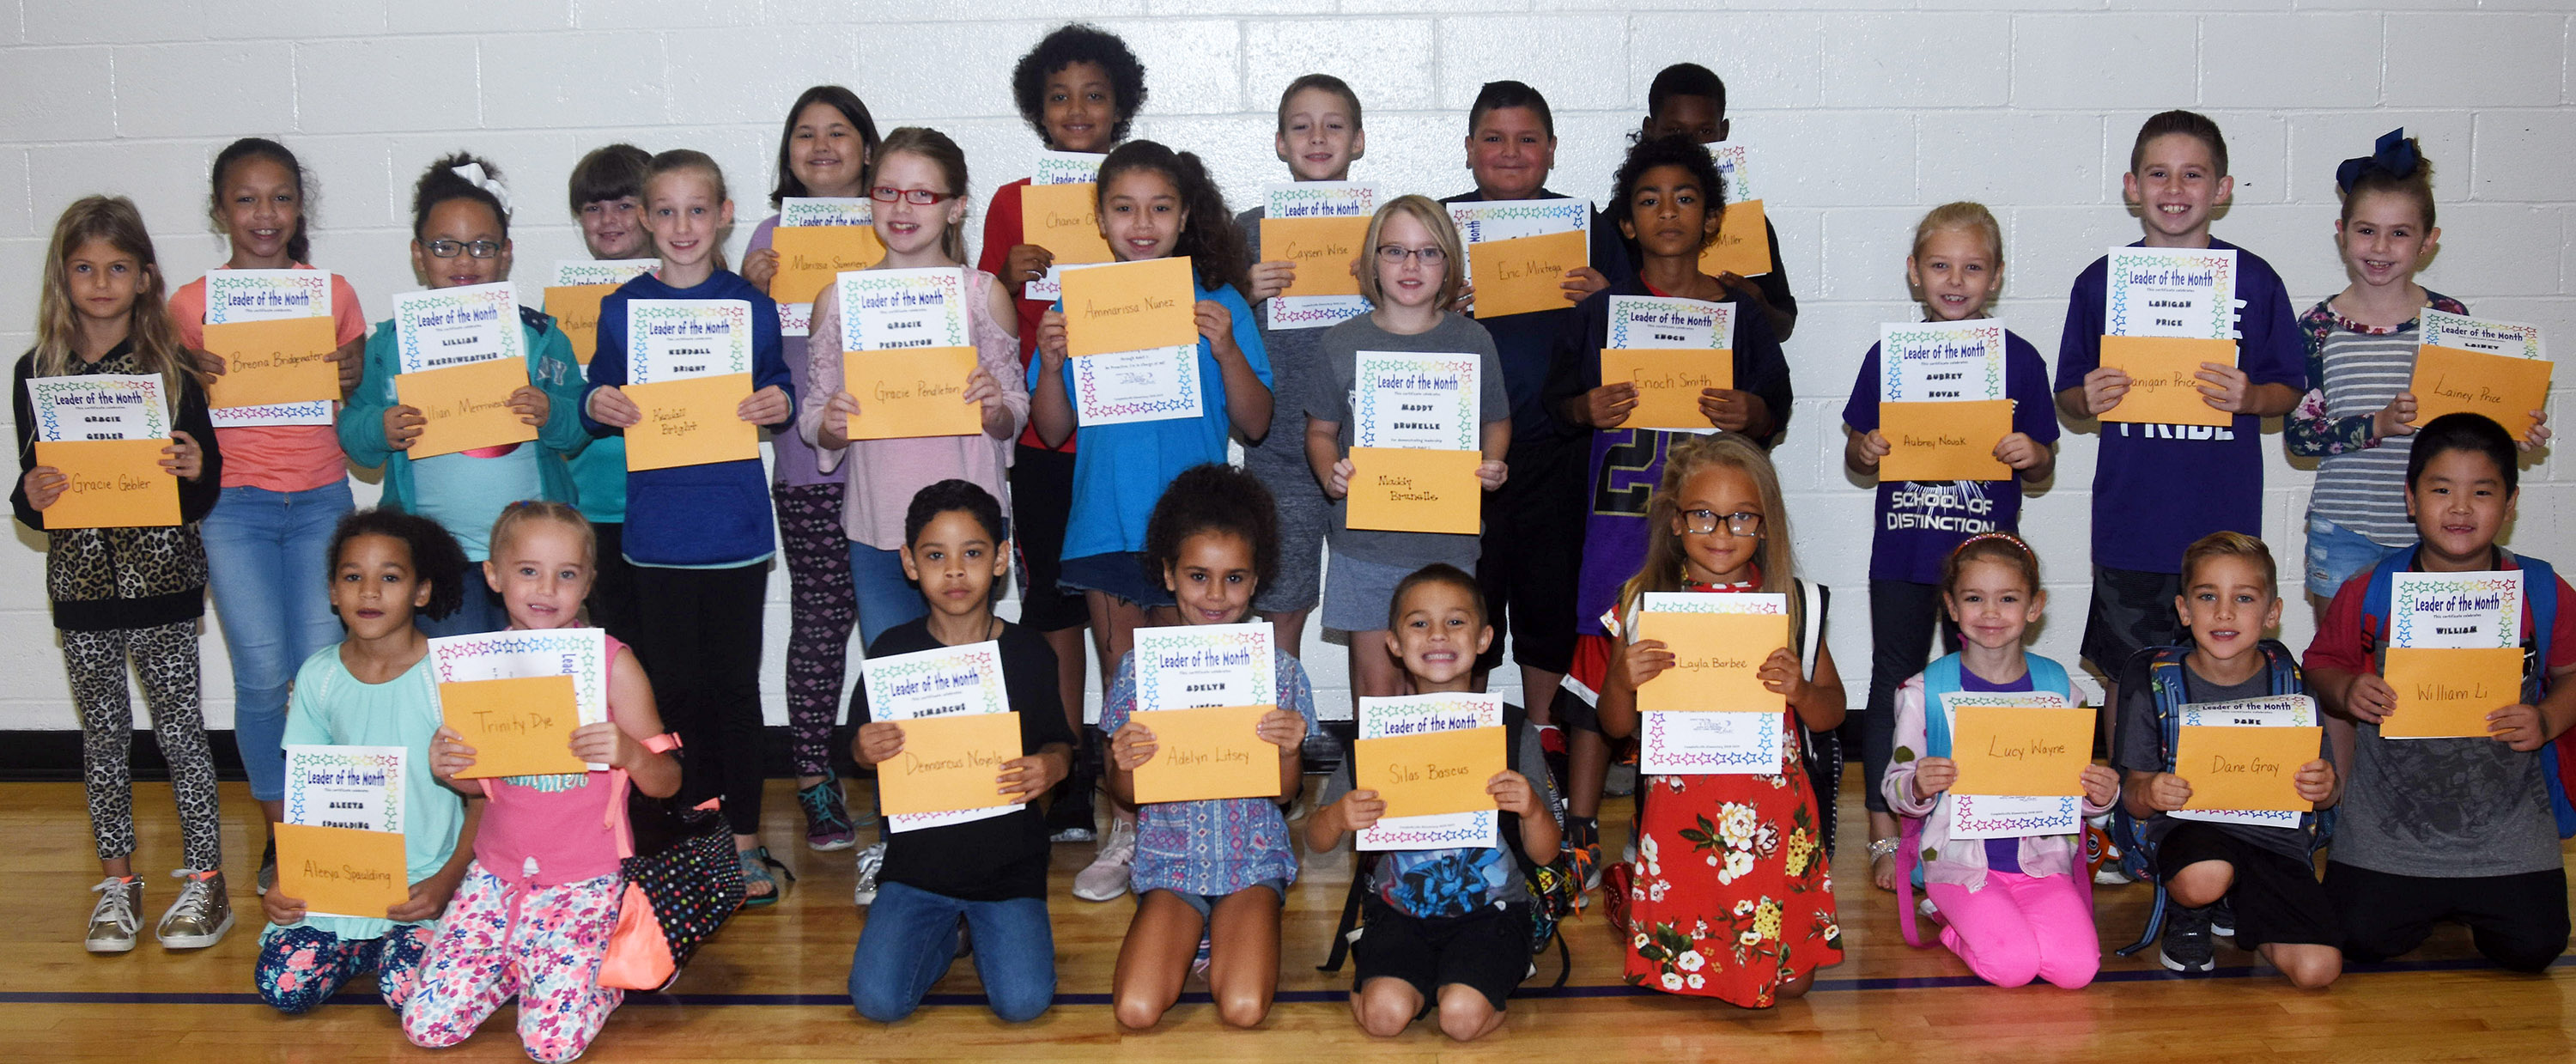 From left, front, are second-graders Aleeya Spaulding, first-grader Trinity Dye, second-grader Demarcus Noyola, first-grader Adelyn Litsey, kindergarteners Silas Bascus, Layla Barbee, Lucy Wayne and Dane Gray and first-grader William Li. Second row, second-grader Gracie Gebler, fifth-grader Breona Bridgewater, first-grader Lillian Merriweather, fifth-graders Kendall Bright and Gracie Pendleton, third-graders Ammarissa Nunez, Maddie Brunelle and Enoch Smith, second-grader Aubrey Novak, fourth-grader Lanigan Price and third-grader Lainey Price. Back, fourth-graders Kaleigh Wilhoite and Marissa Sumners, fifth-graders Chance Owens and Caysen Wise and third-graders Eric Mixtega and Lazarick Miller. Absent from the photo is fourth-grader Brealeigh Reed.